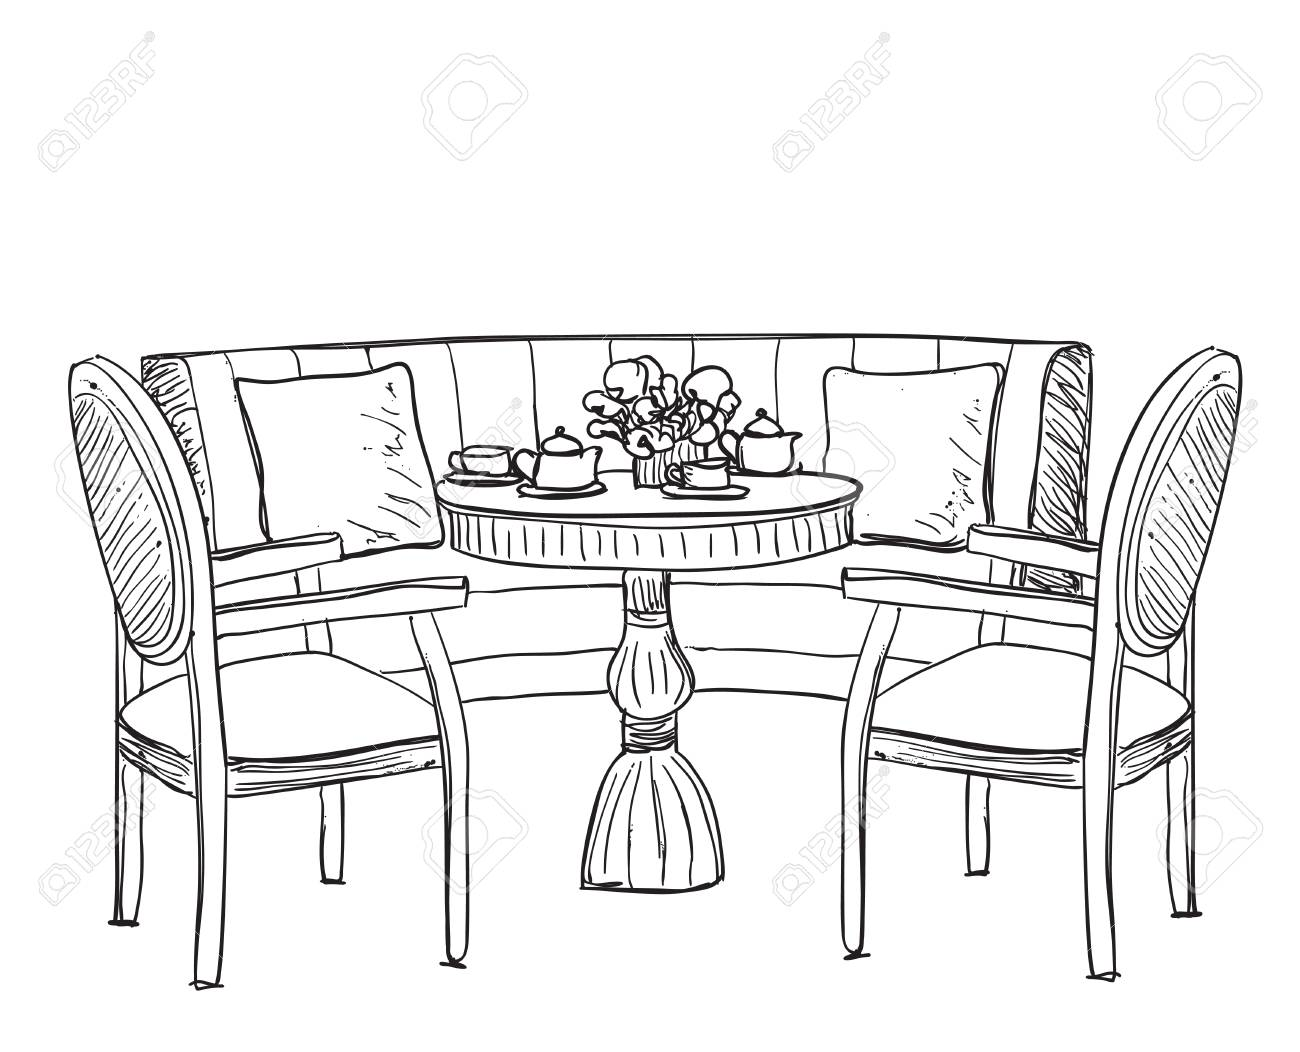 Dinner Sofa Furniture In The Cafe Dinner Table Hand Drawn Chair And Sofa